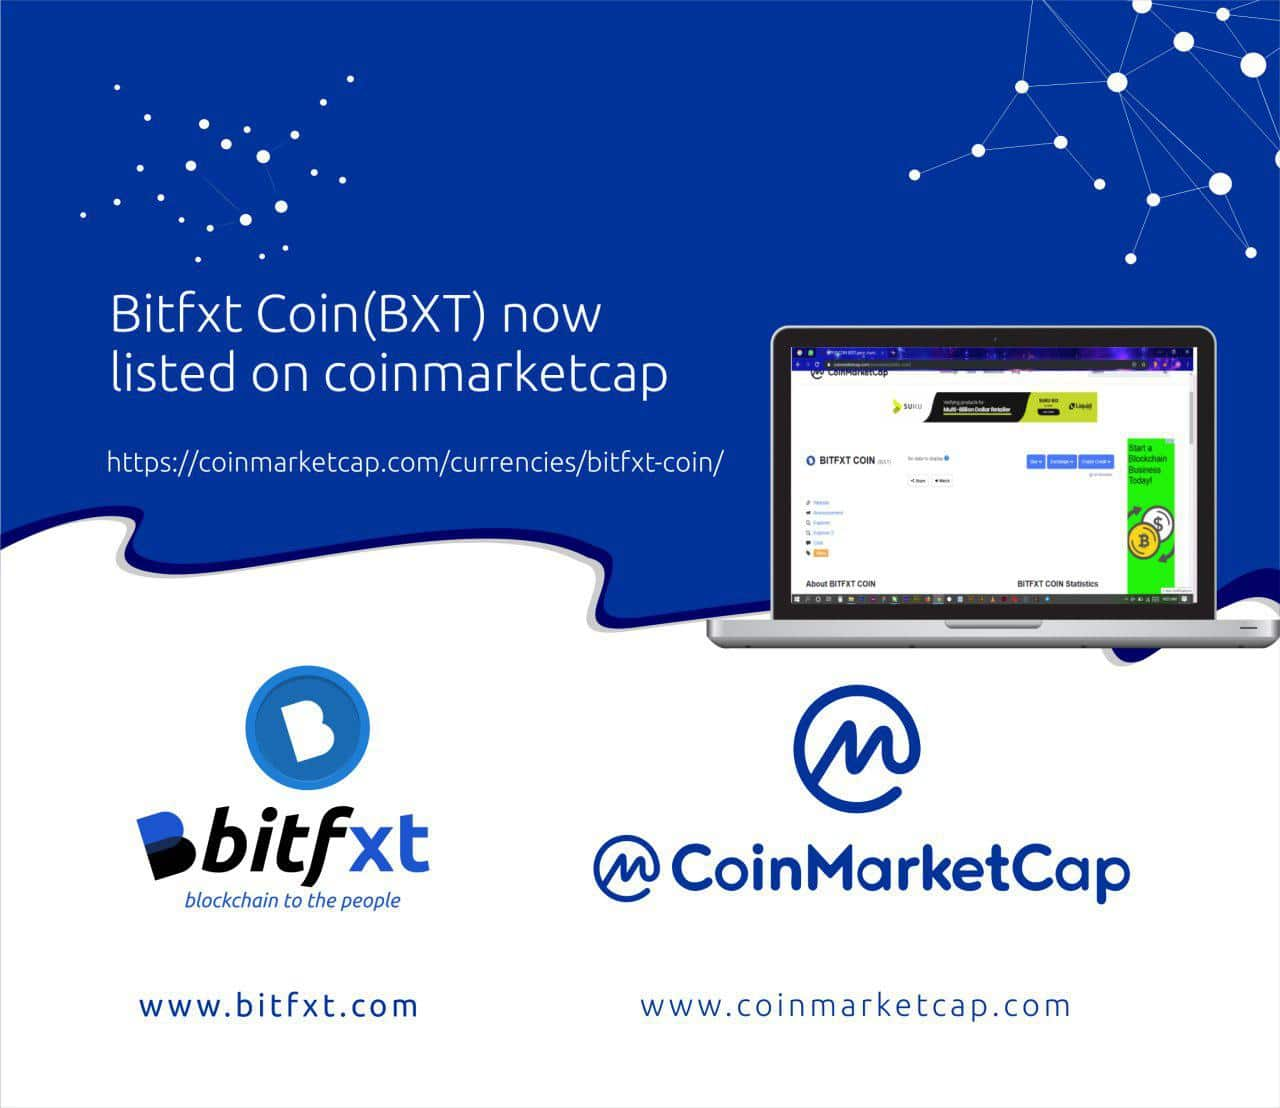 Bitfxt coin listed on coinmarketcap.com